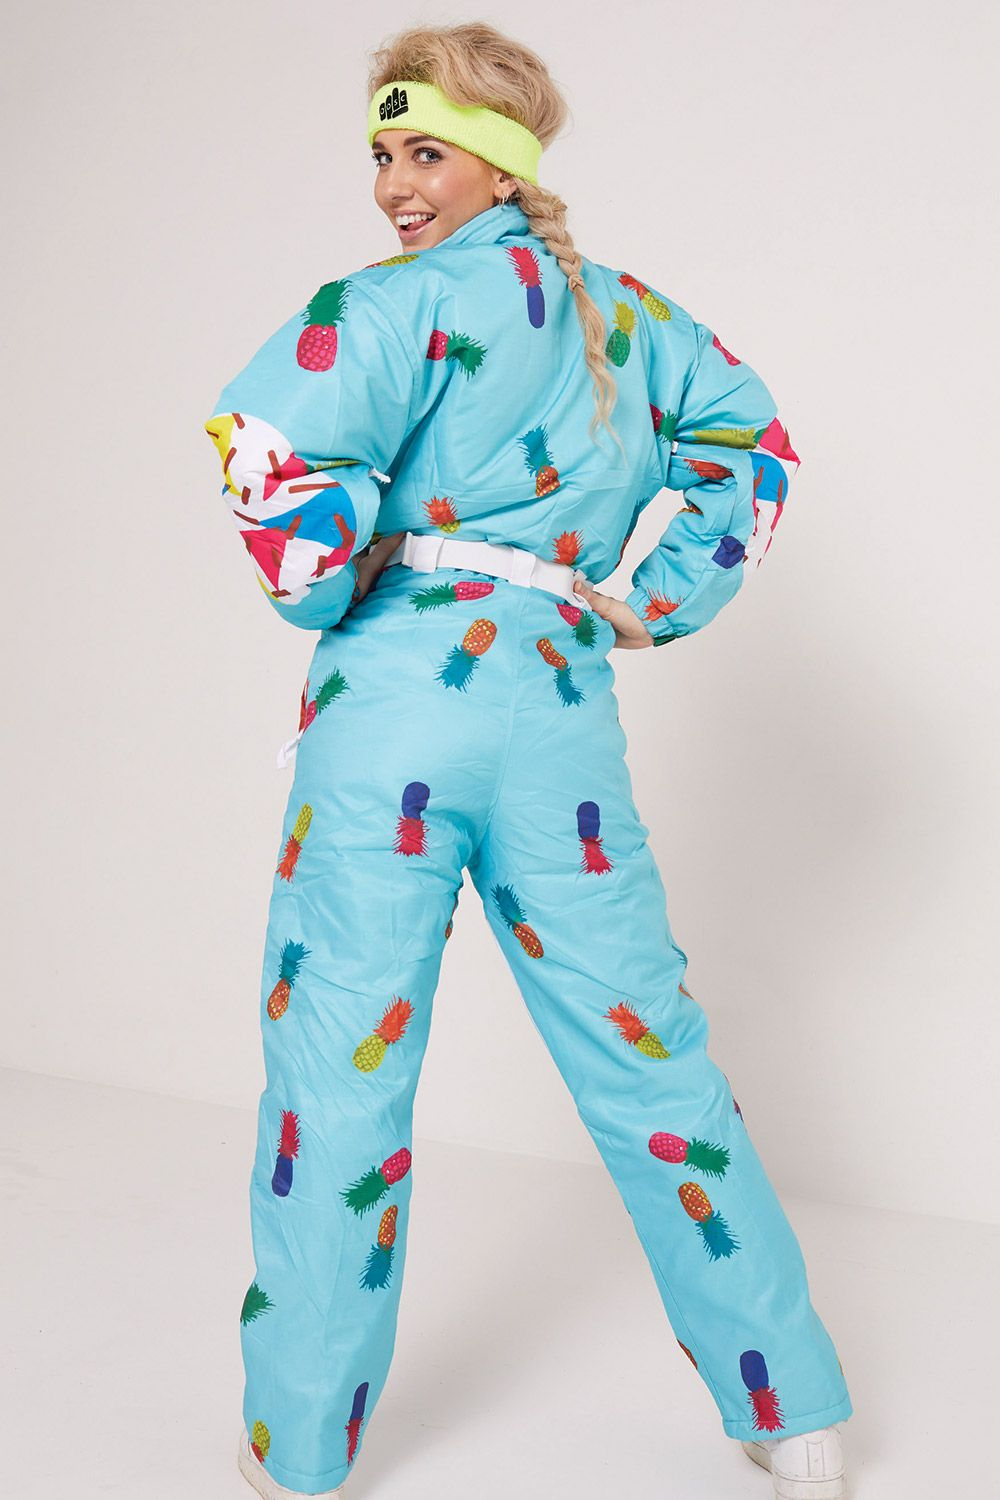 Club Tropicana Oosc Ski Suit Oosc Clothing Club Tropicana Suits Winter Suit